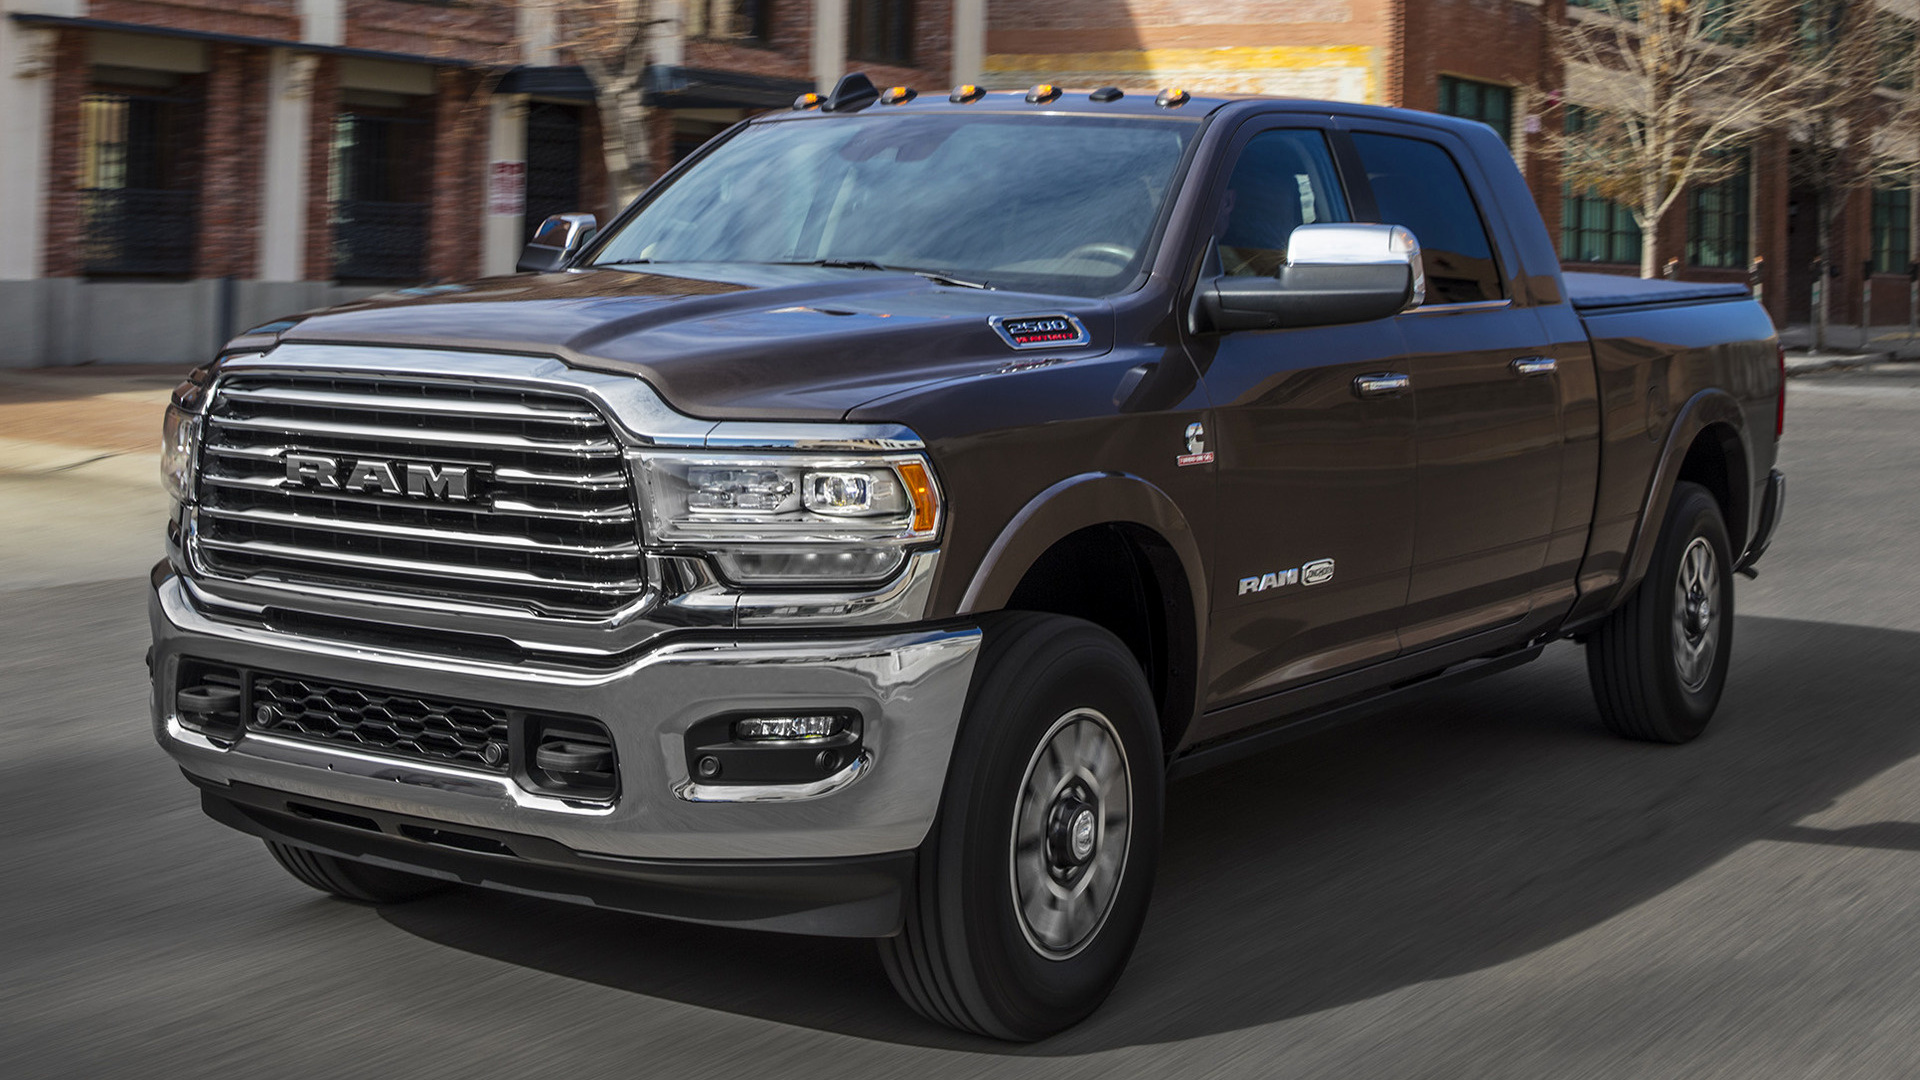 2019 Ram 2500 Longhorn Mega Cab - Wallpapers and HD Images | Car Pixel